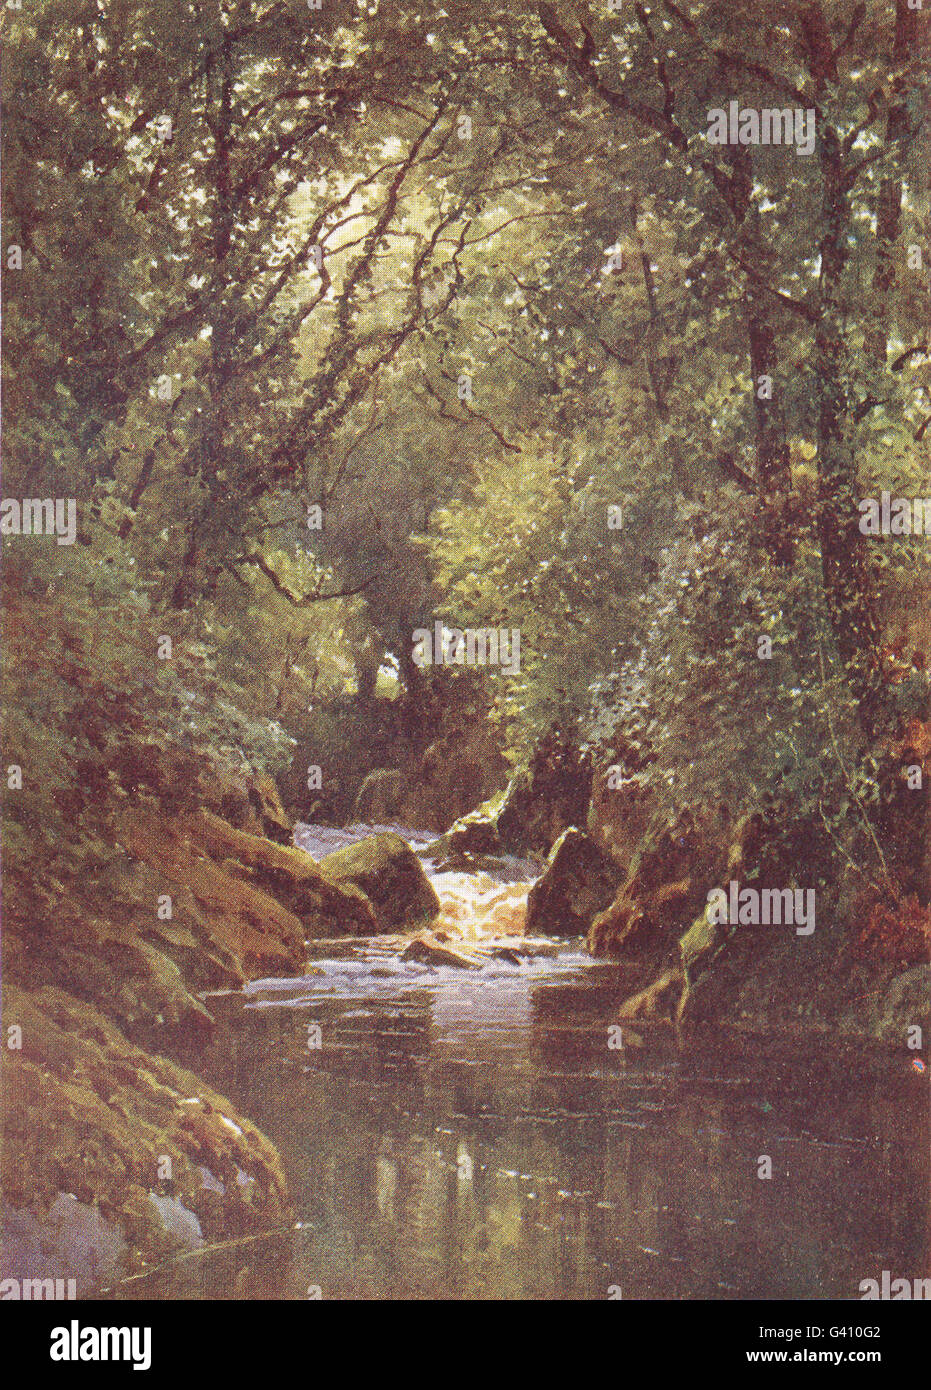 DEVON: The Erme, Ivy bridge, Devon, antique print 1908 - Stock Image